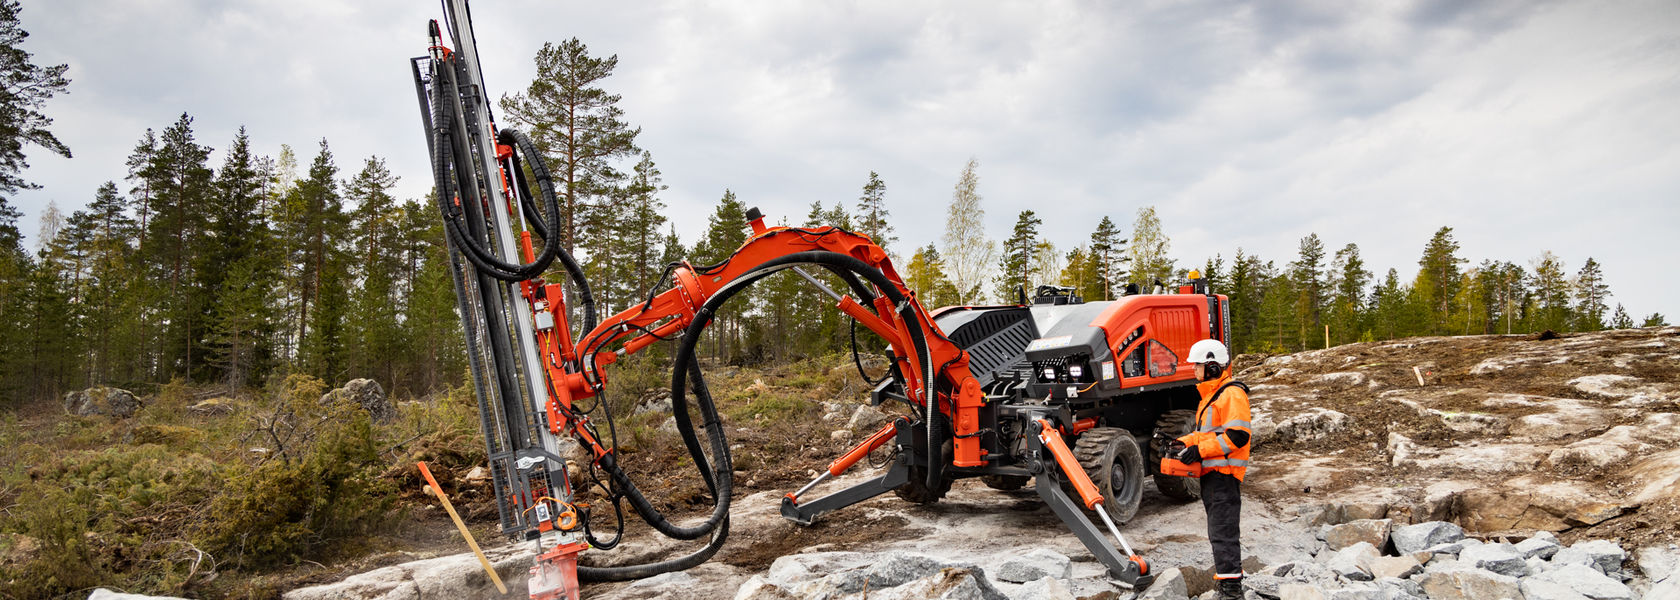 Multipurpose Commando DC300Ri drill rig launched by Sandvik